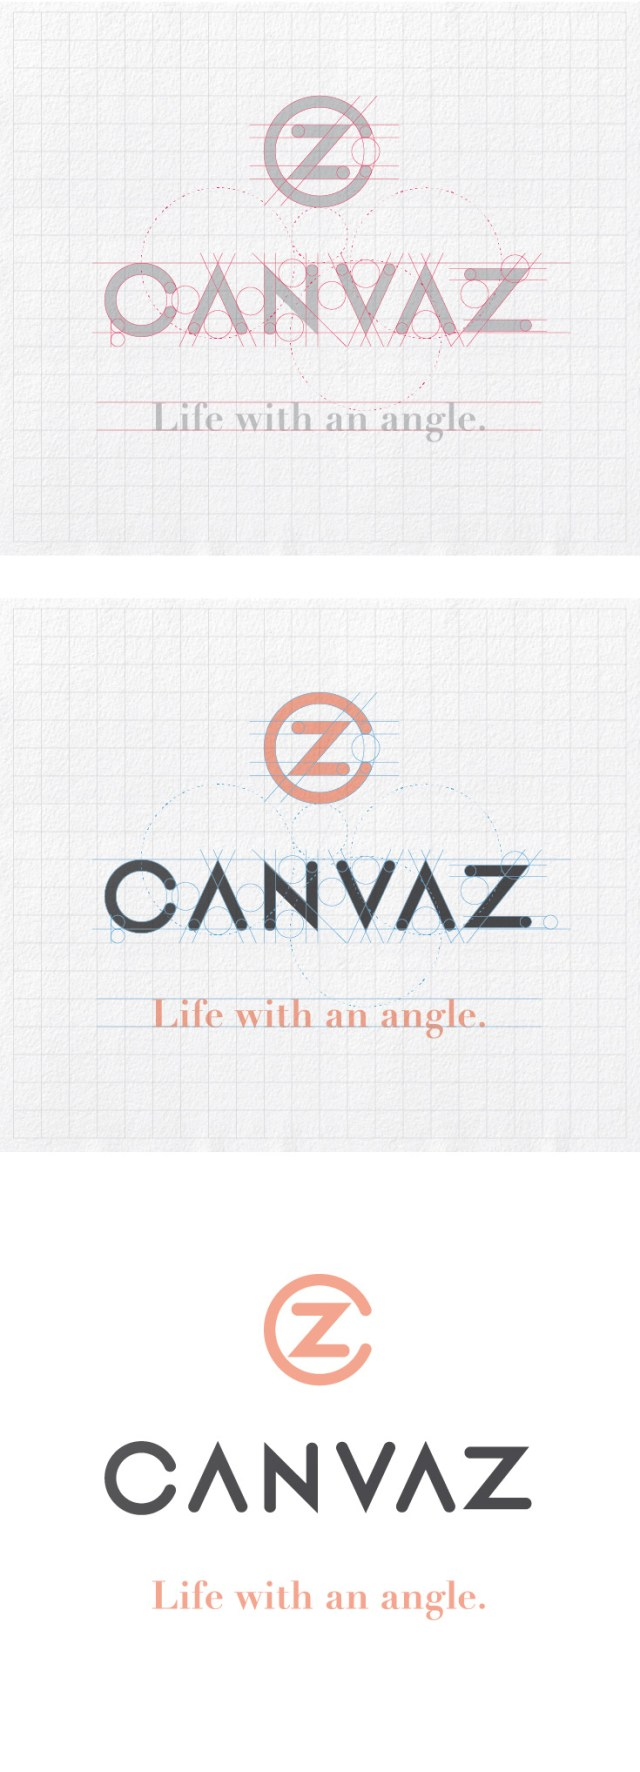 Canvaz Brand Identity Design & Strategy